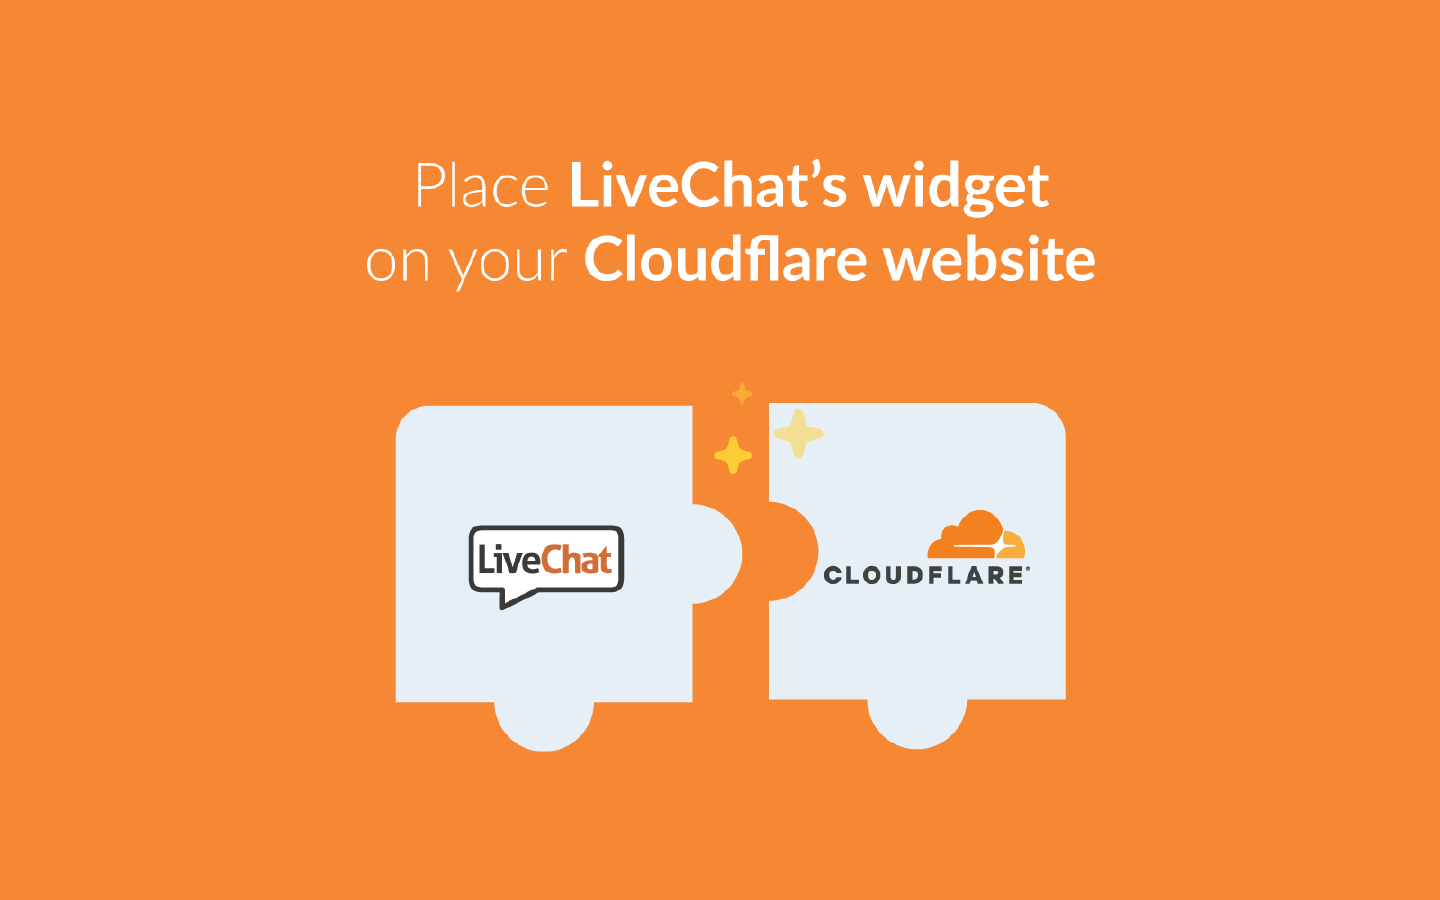 LiveChat's integration for Cloudflare